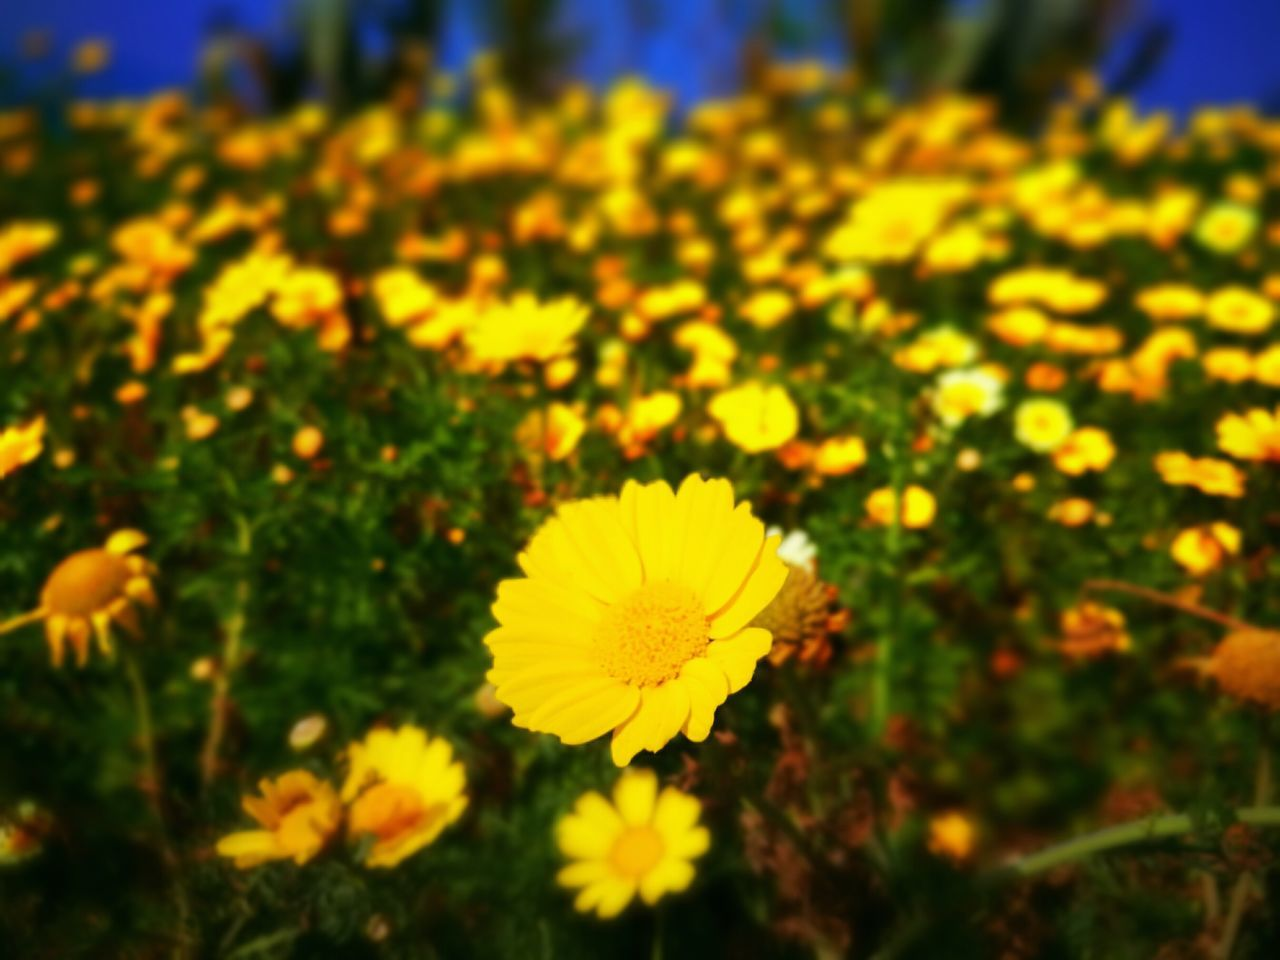 Welcome spring! Flower Nature Daisy Daisy Flower Daisies Yellow Flower Yellow Flowers Seaside Seasons Springtime Spring Flowers Fragility Beauty In Nature Yellow Growth Plant Focus On Foreground Flower Head Freshness Outdoors Petal Close-up Day No People HuaweiP9